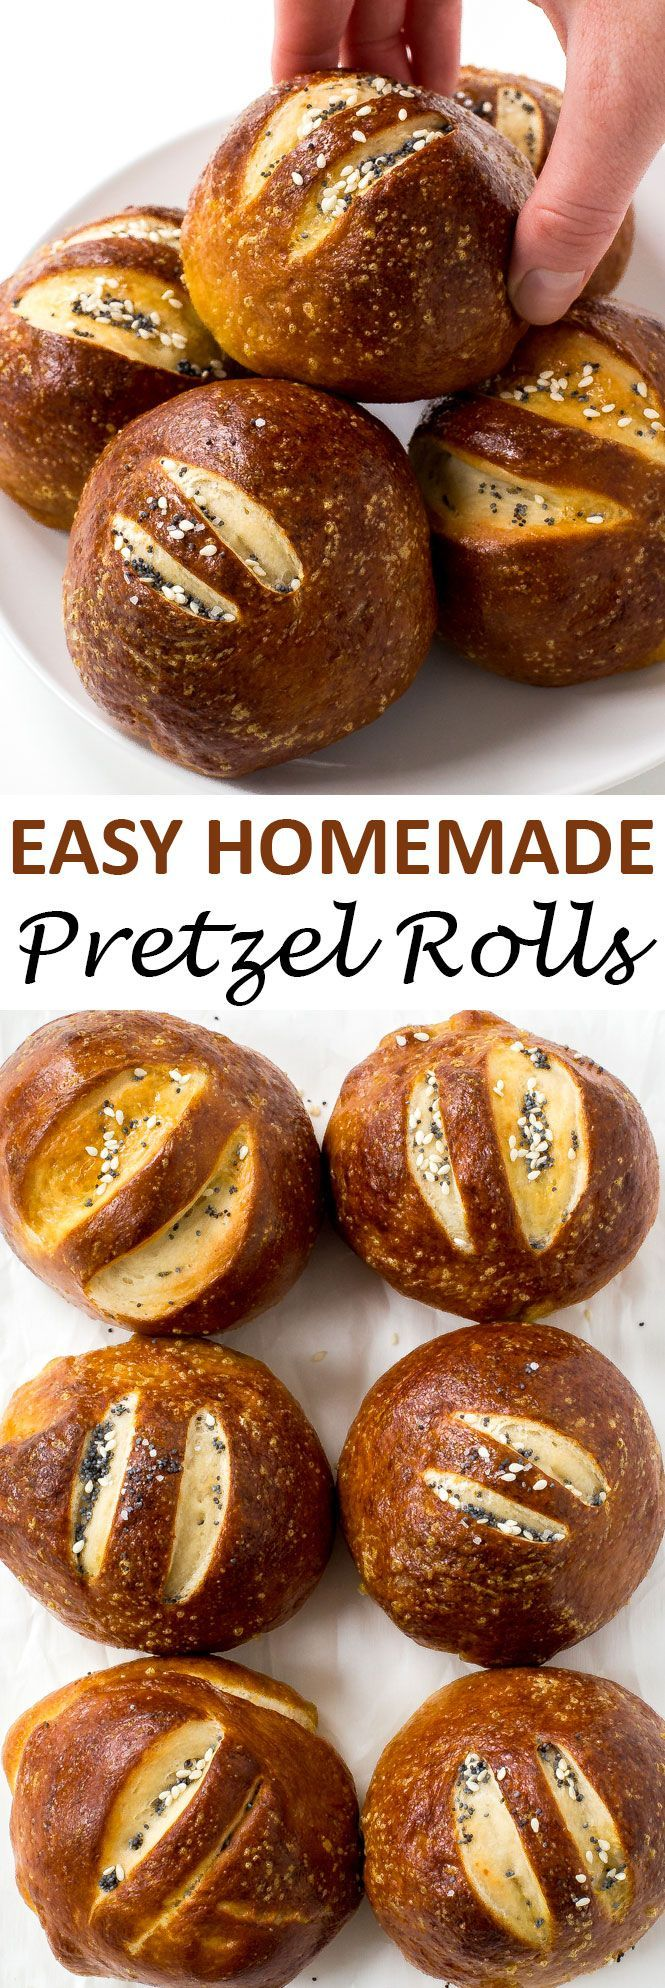 手机壳定制real turbo fire results imageshack uploader Homemade Pretzel Rolls baked to perfection and topped with sesame seeds salt and poppy seeds They are a lot easier to make at home than you think  chefsavvy com recipe pretzel rolls bread